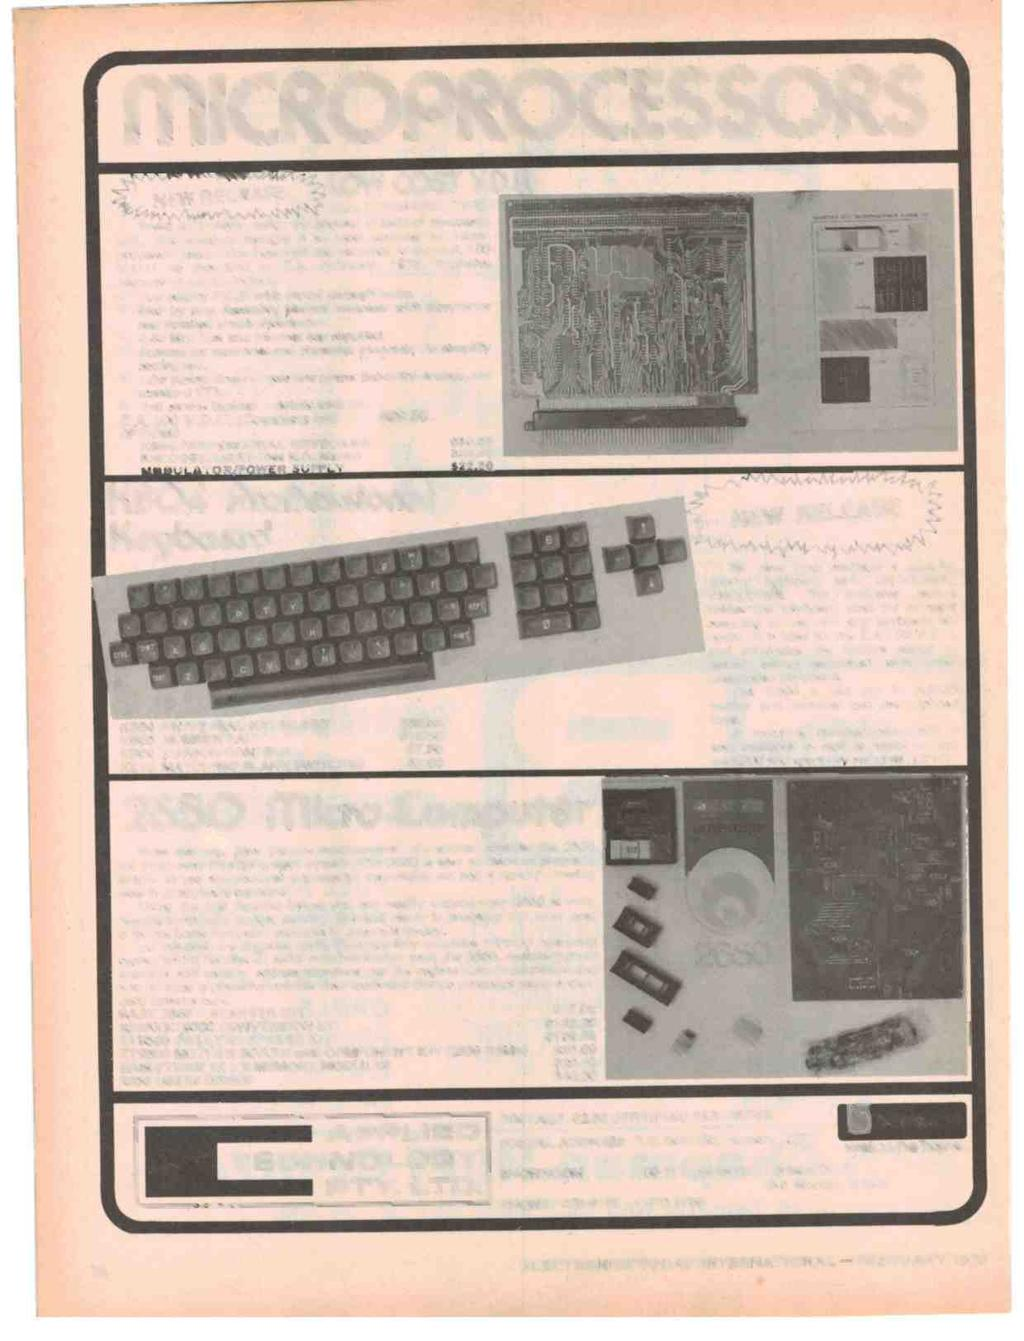 `.. LOW ICROPROCE SSORS NEW RELEASE COST V.D.U. (E.A. FEB/MARCH 1978) Based on a clever design by Michael O'Neill of Newcastle Uni., this compact module is an ideal terminal for microprocessor users.